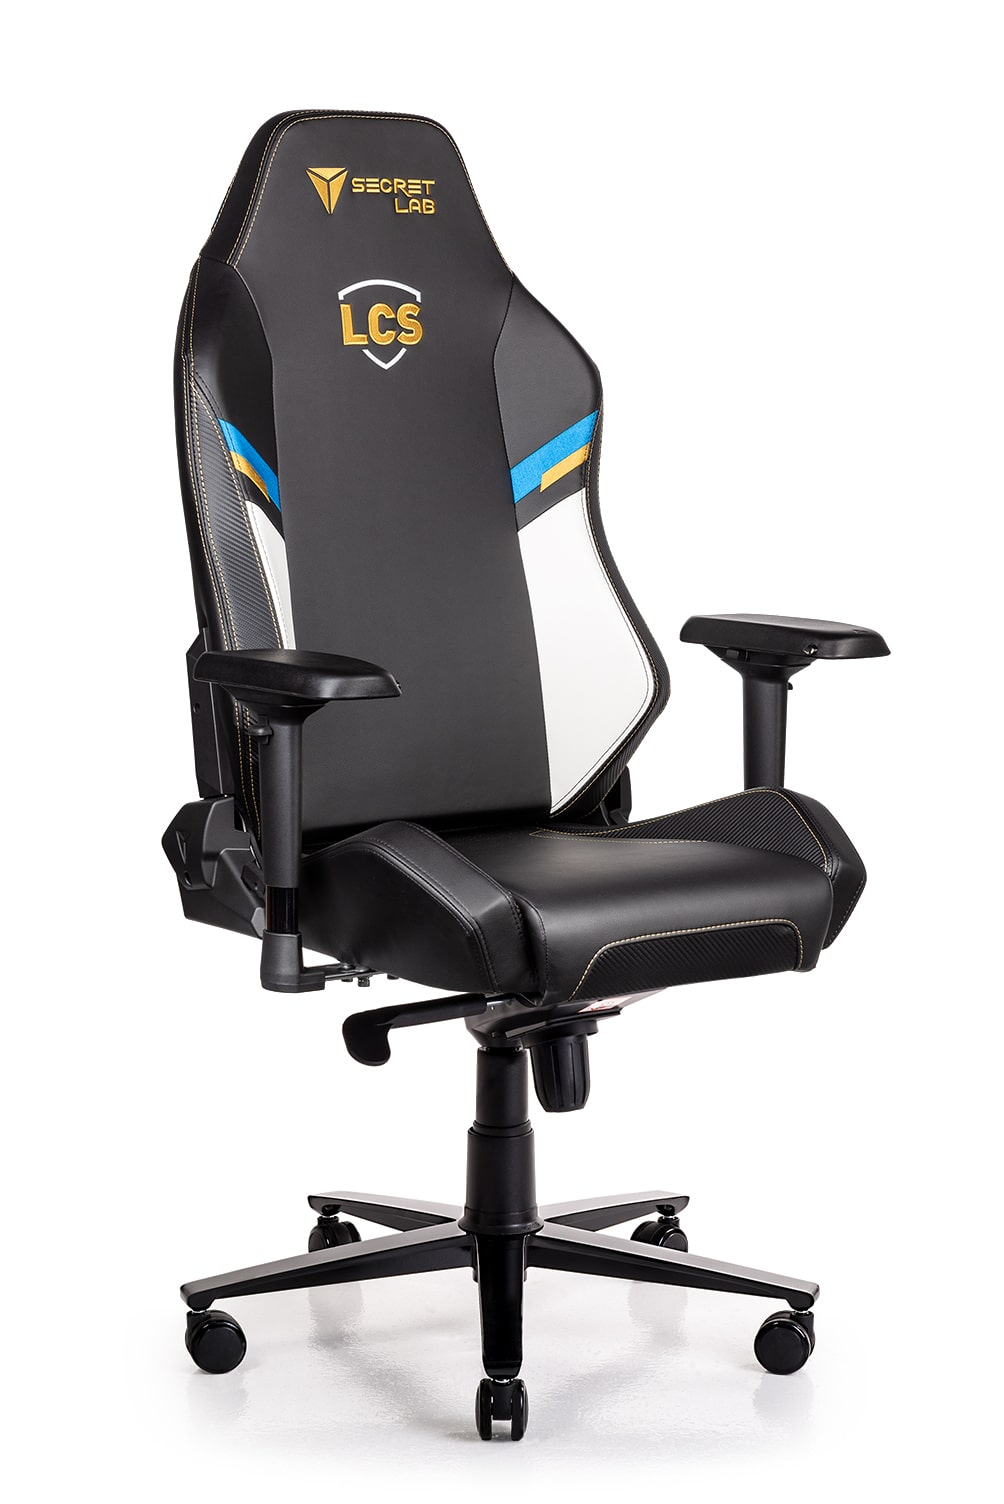 Secretlab OMEGA Series - LCS Special Edition Gaming Chair